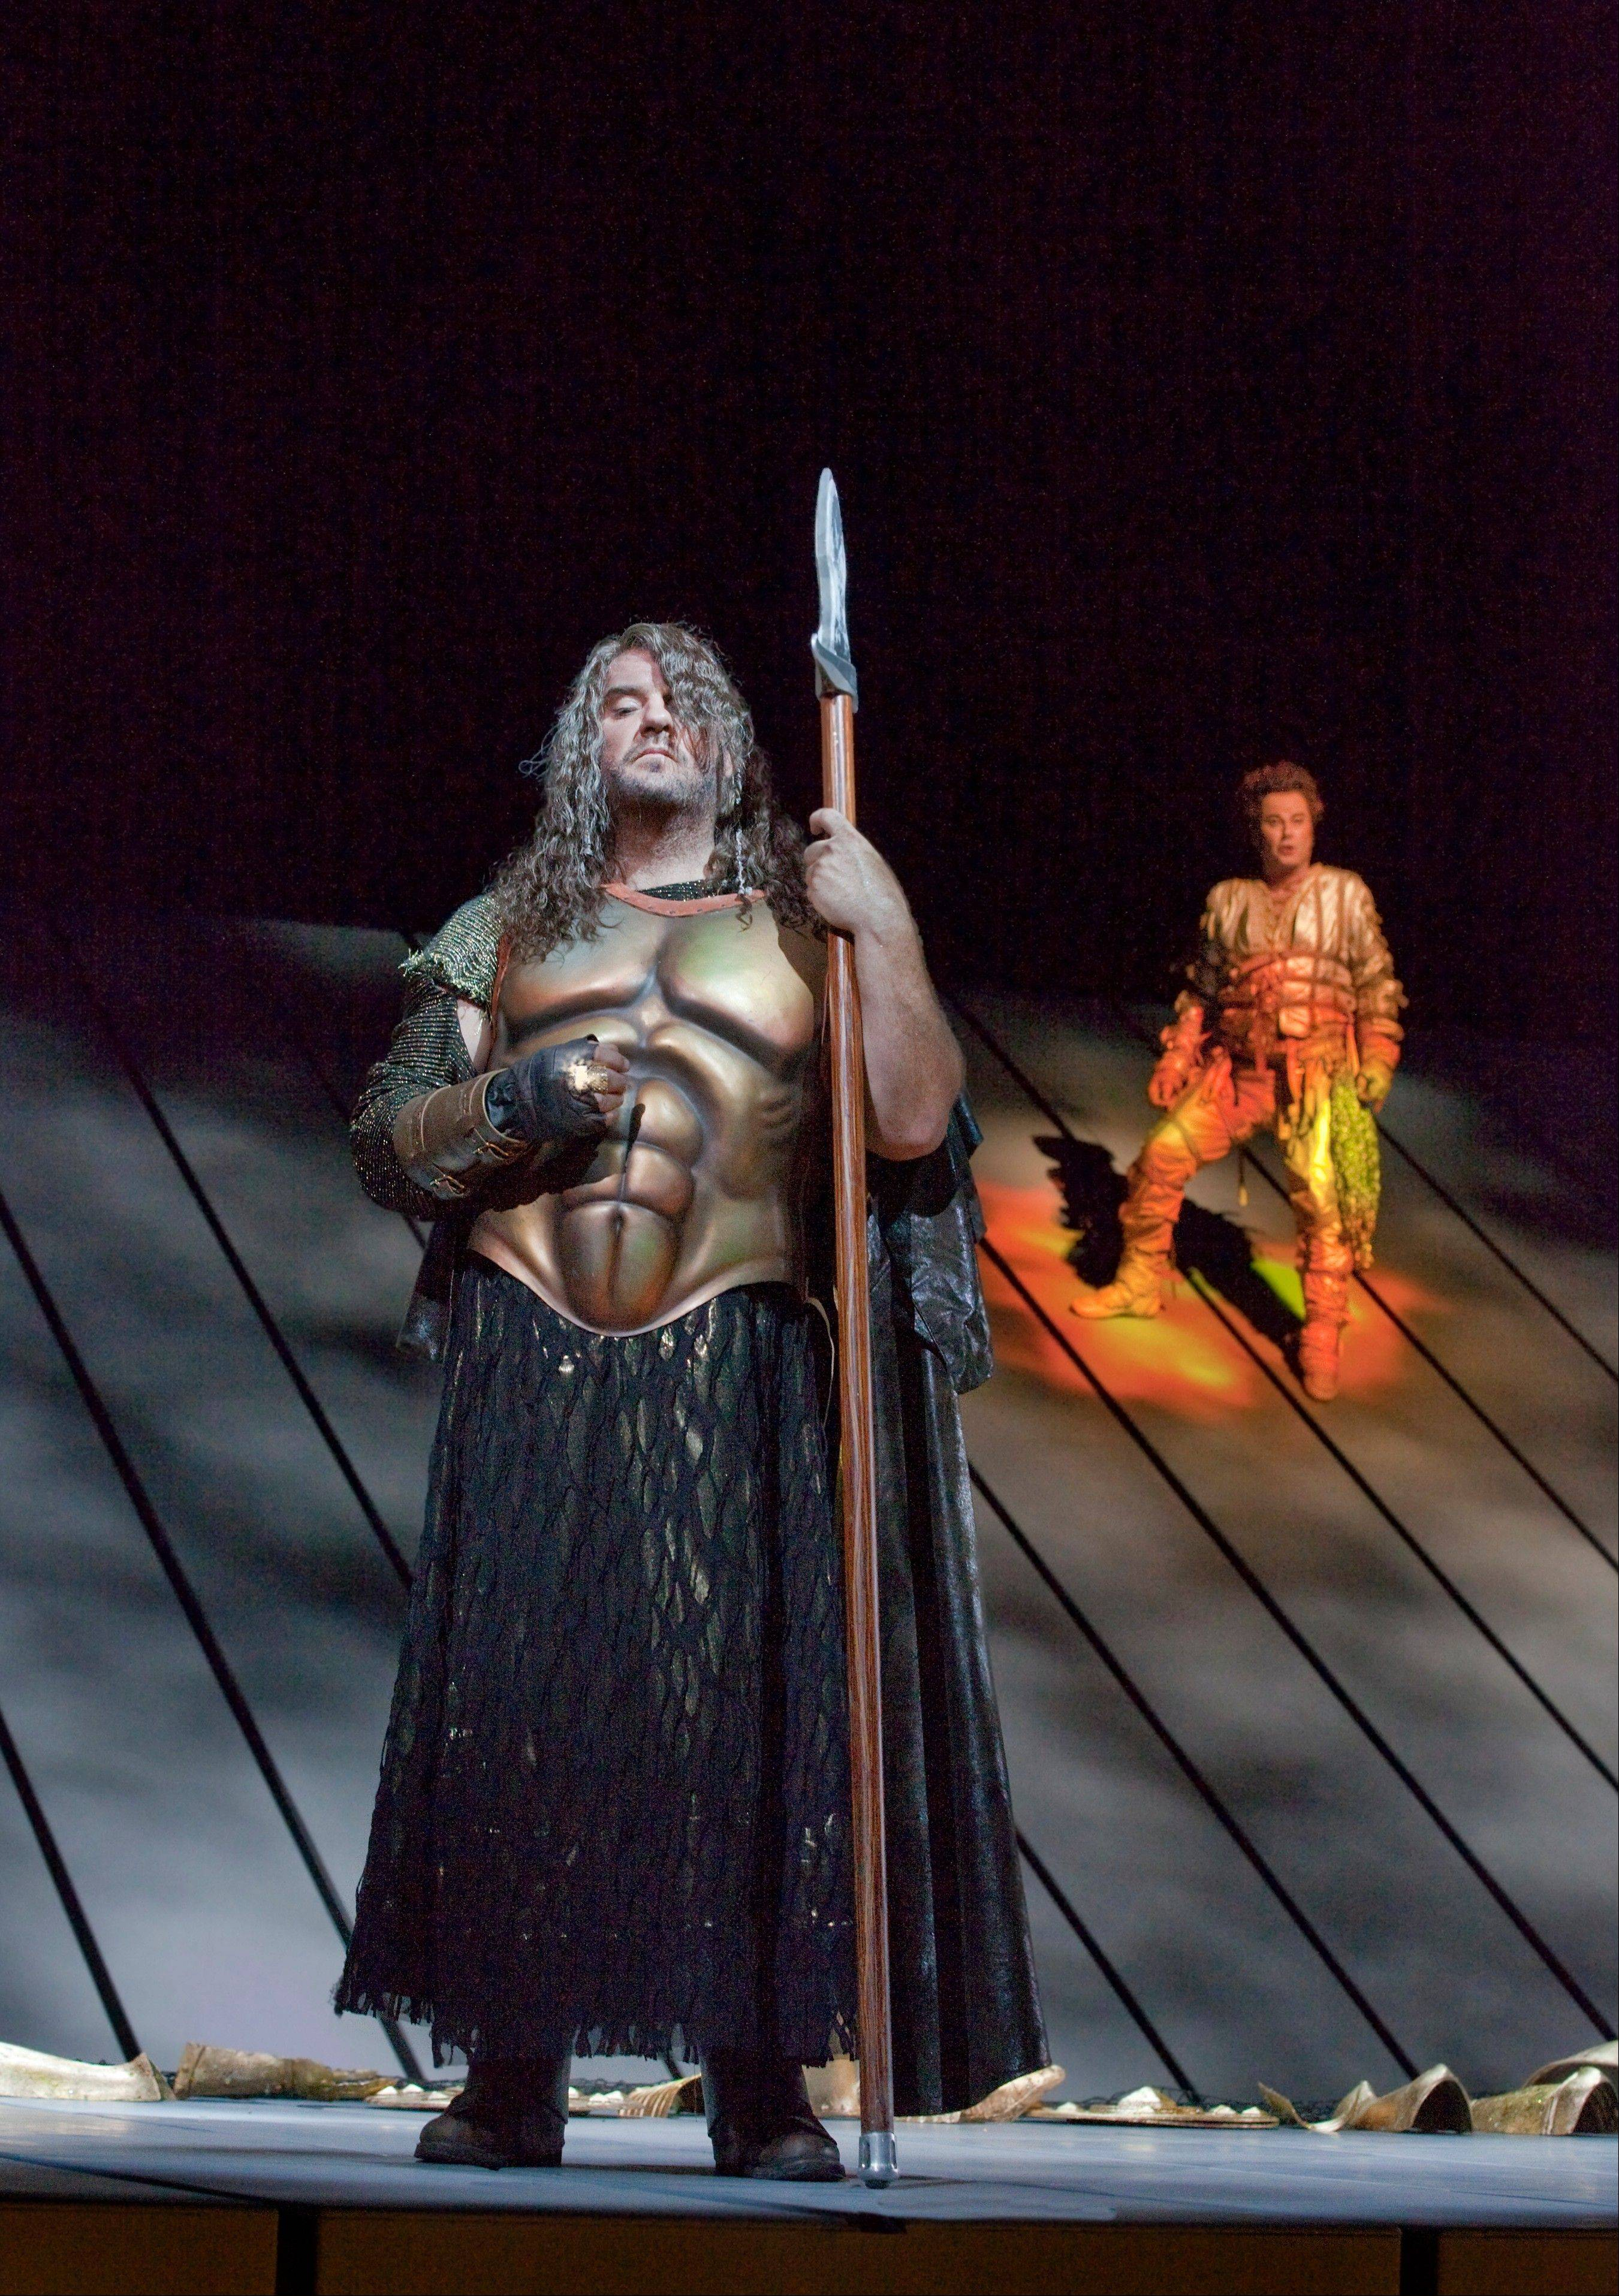 "Wotan (Bryn Terfel) gets dodgy advice from the fire god Loge (Richard Croft) in Wagner's ""Das Rheingold,"" the first of four operas staged in Robert Lepage's production of the monumental ""Der Ring des Nibelungen"" for the Metropolitan Opera. The four operas are rescreened in select movie theaters in May."